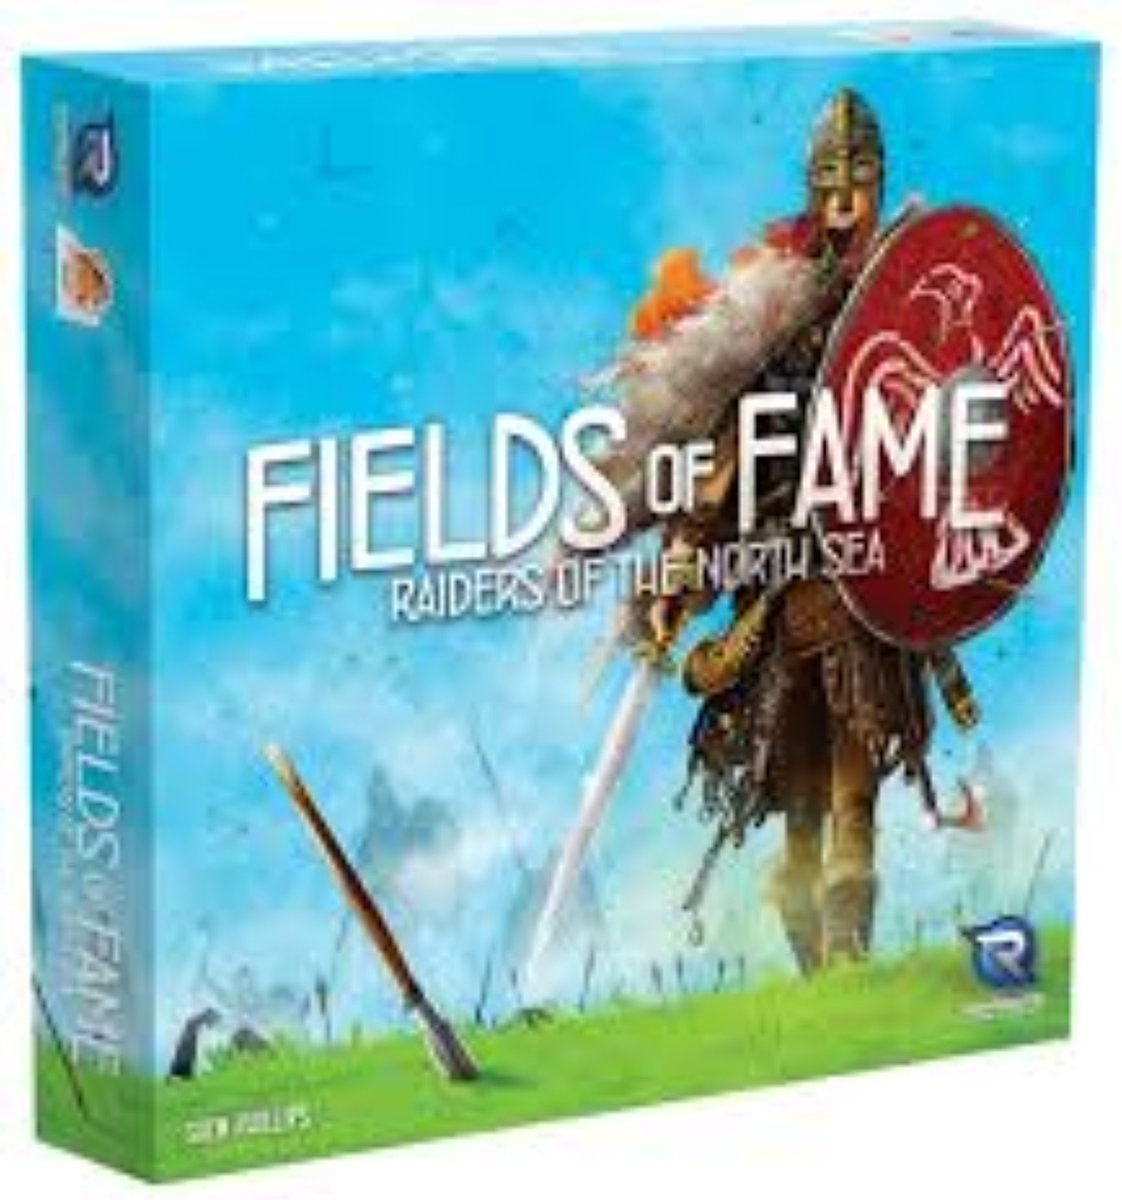 Raiders of the north sea Fields of Fame